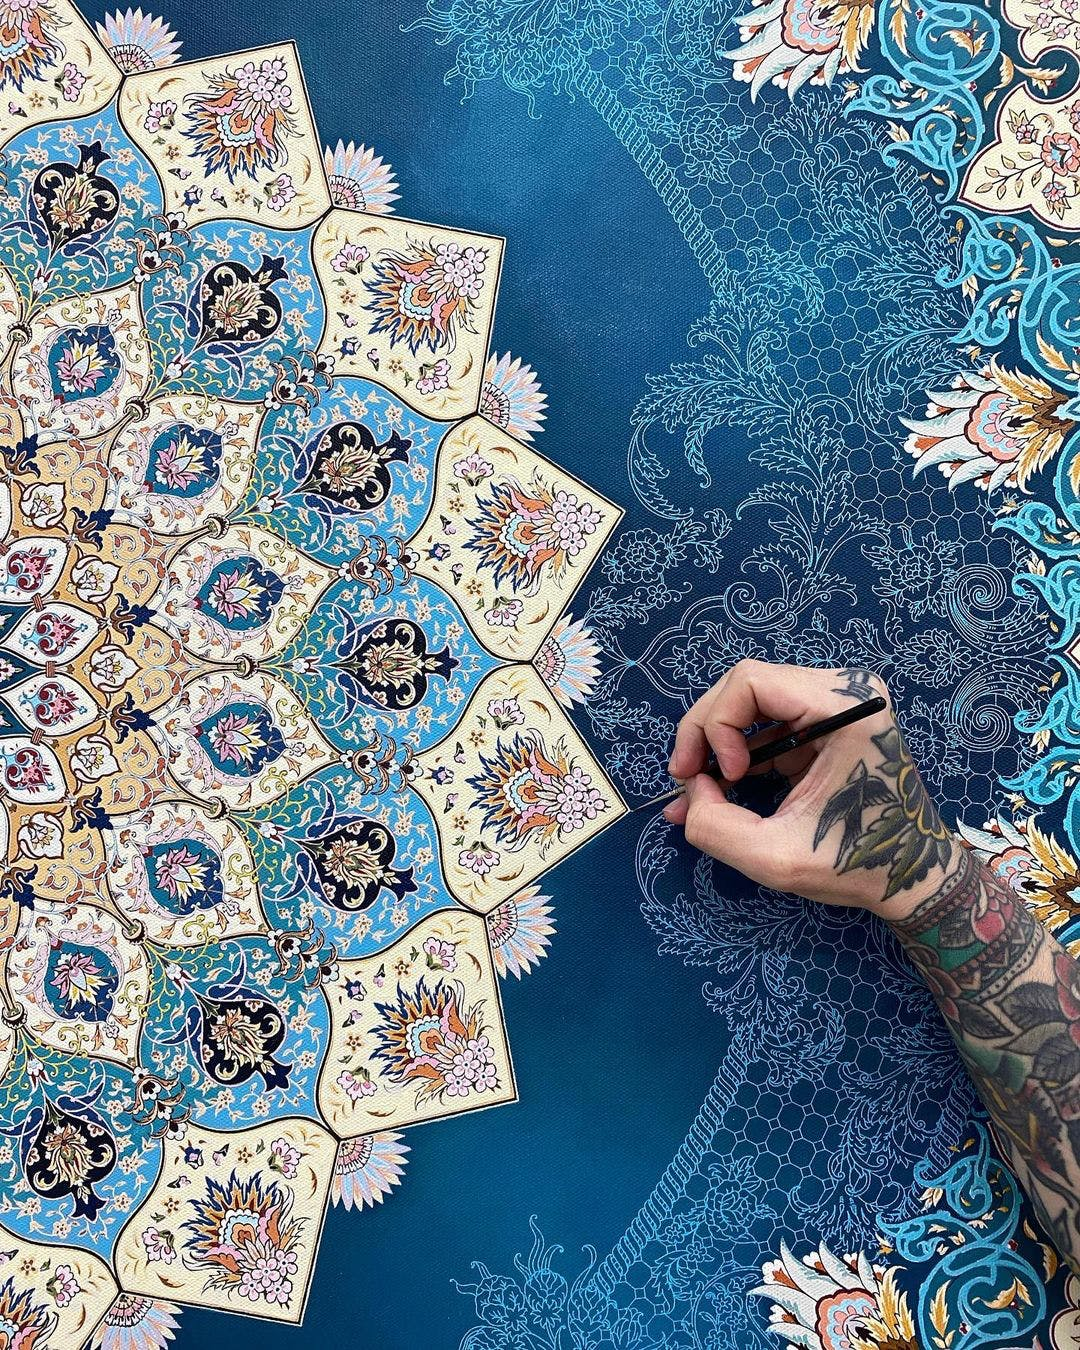 JASON SEIFE'S WORK REFERENCES OLD PERSIAN CARPETS